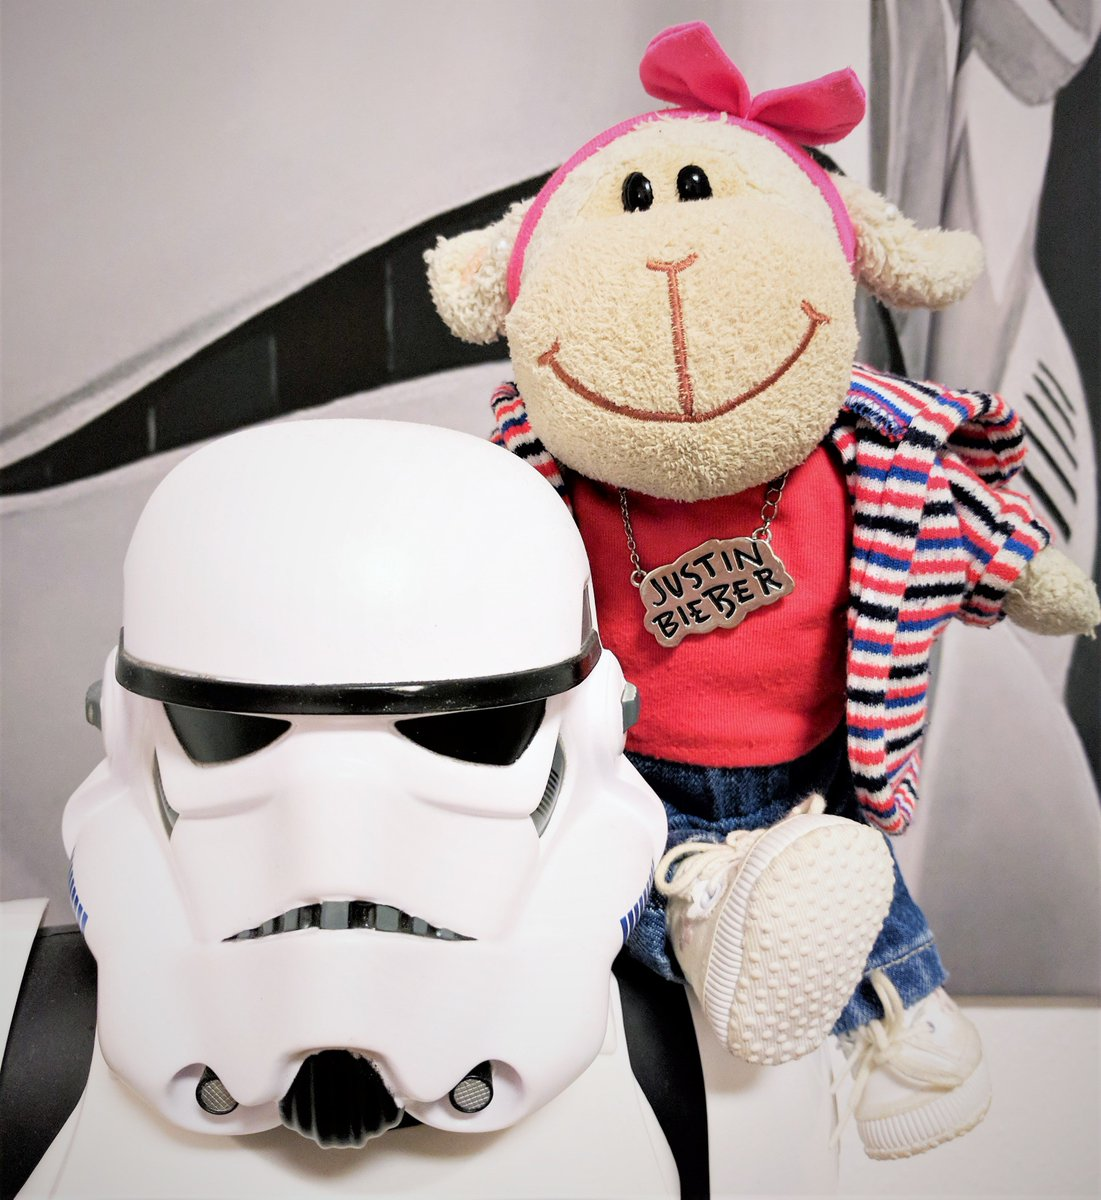 Do. Or do not. There is no try. – Yoda   #StarWars #stormtrooper #jedi  #fashion #outfitoftheday #fashionblogger #fbloggers  #Beliebers <br>http://pic.twitter.com/HskKhHFrdG